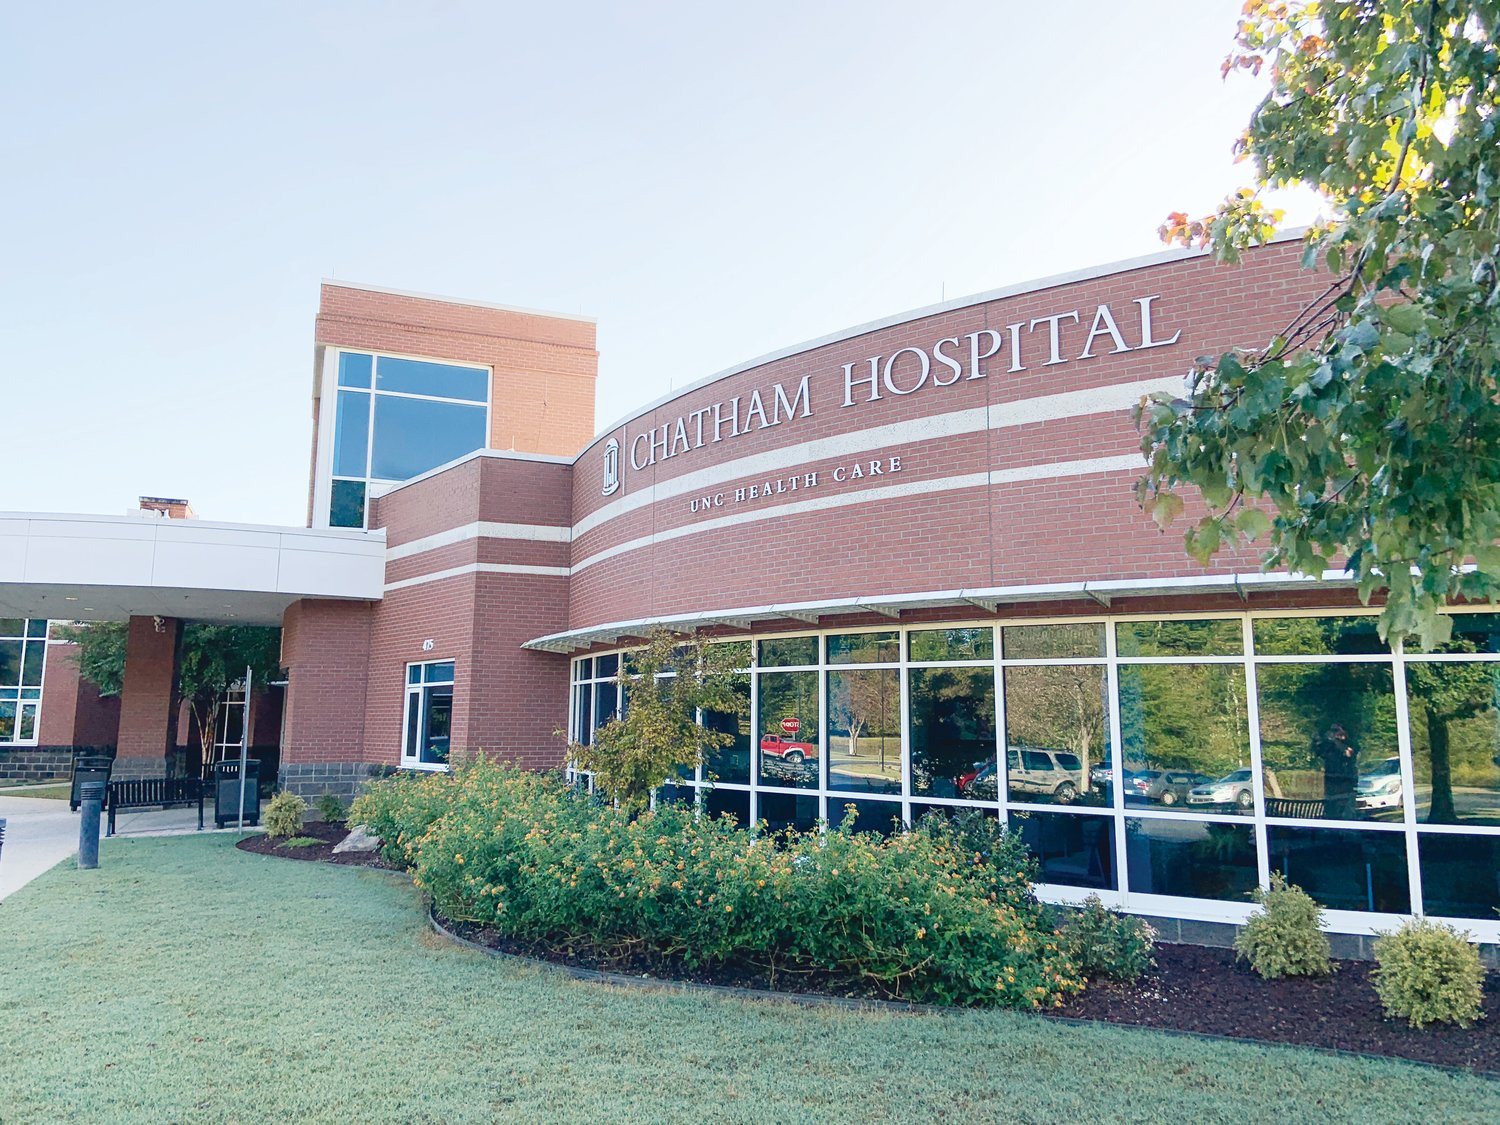 Chatham Hospital in Siler City is planning to restart maternity care, including births, in September 2020. The hospital stopped its previous maternity program more than 20 years ago.